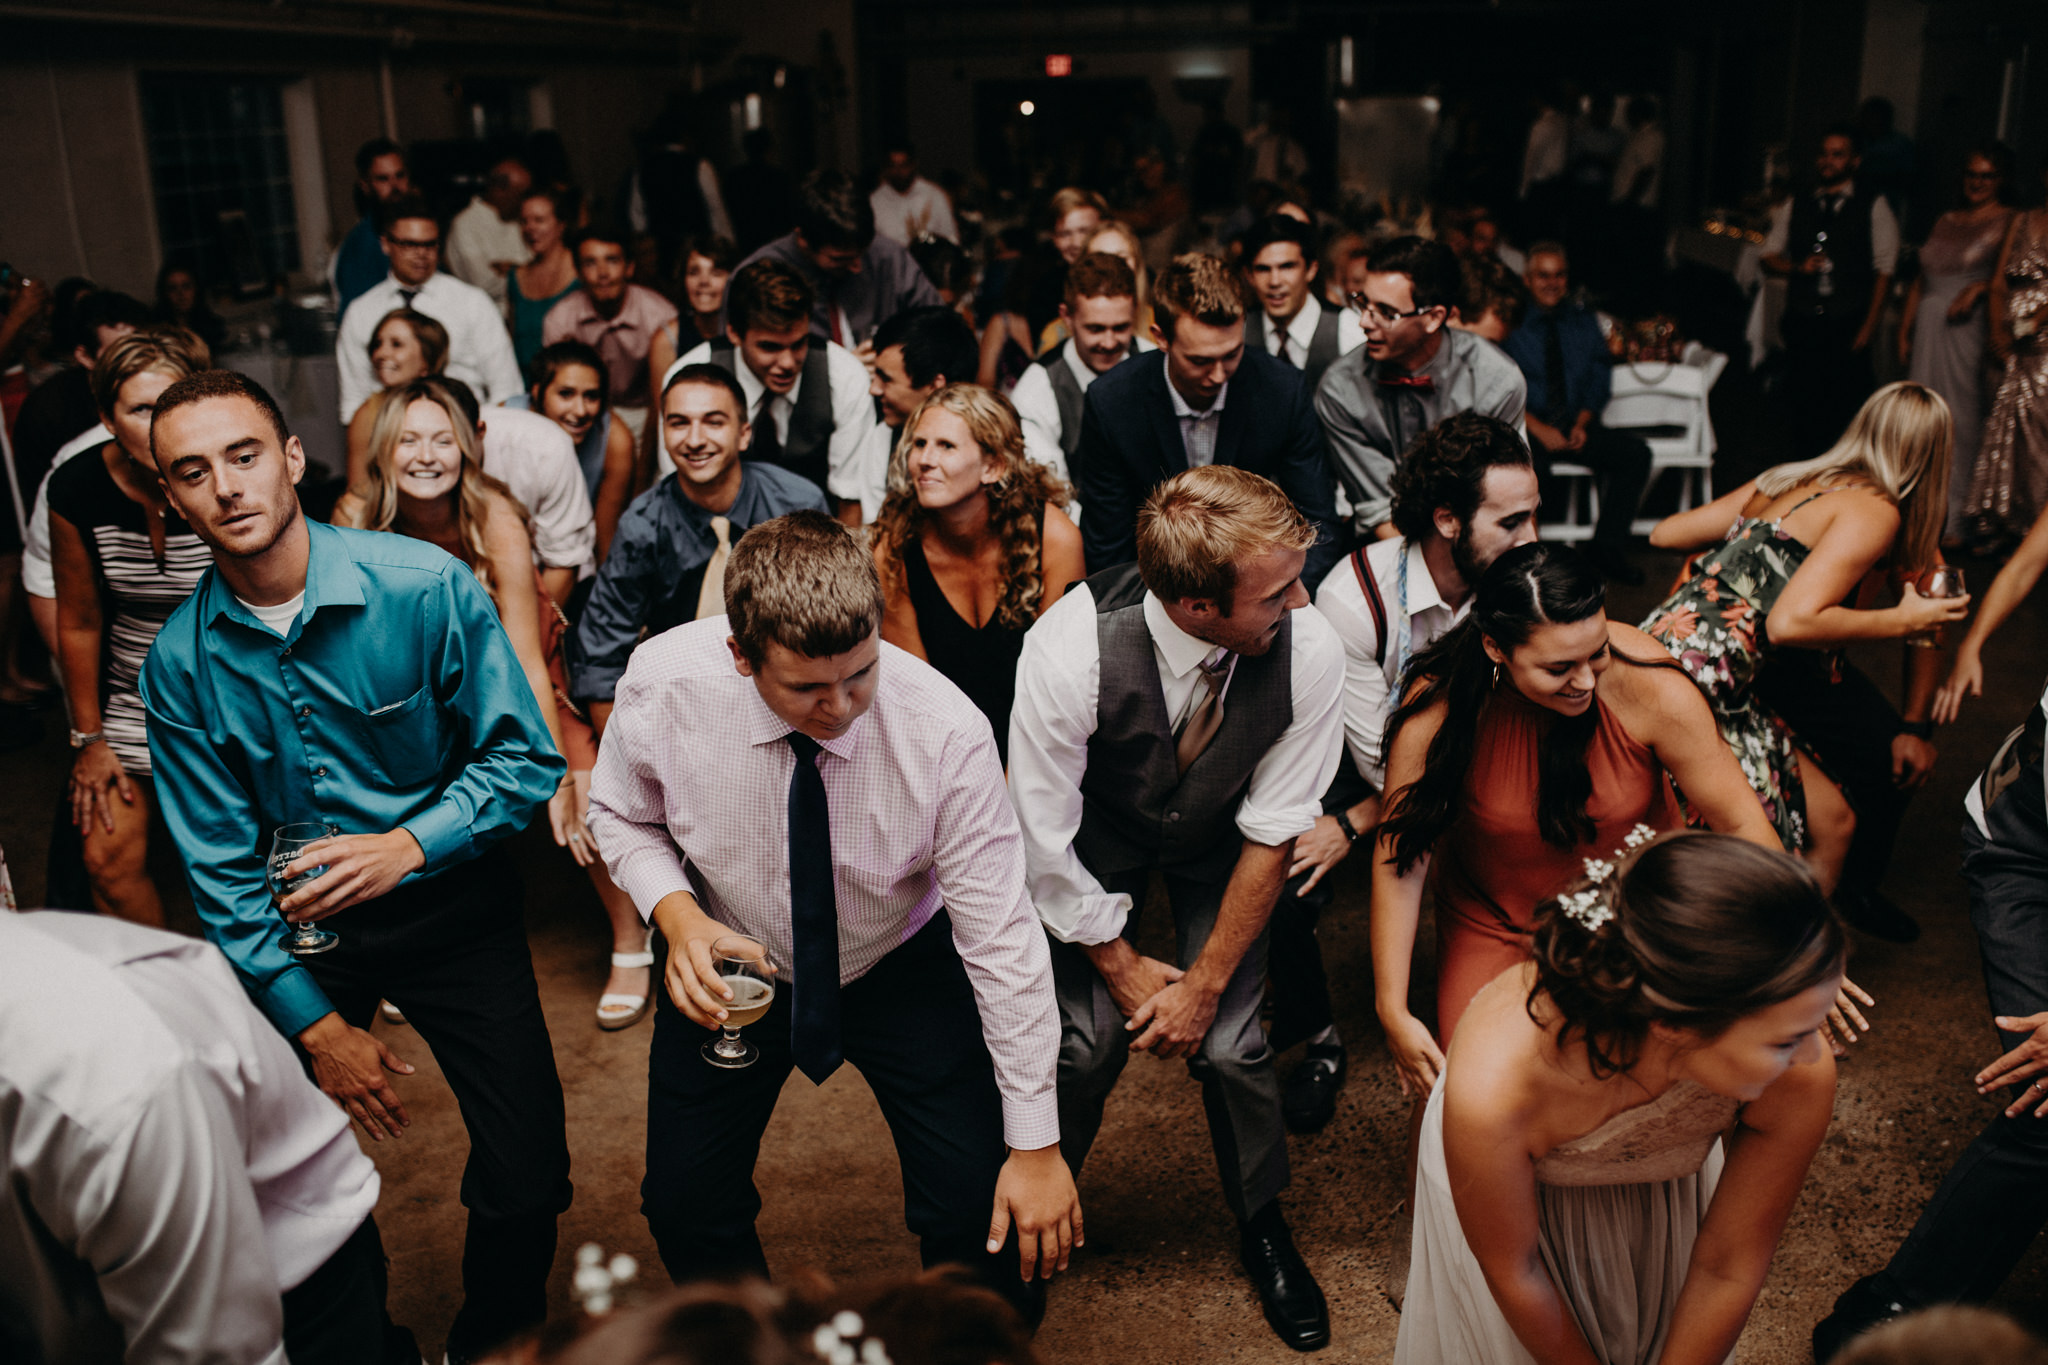 Crown of wedding guests dancing to Cha Cha Slide